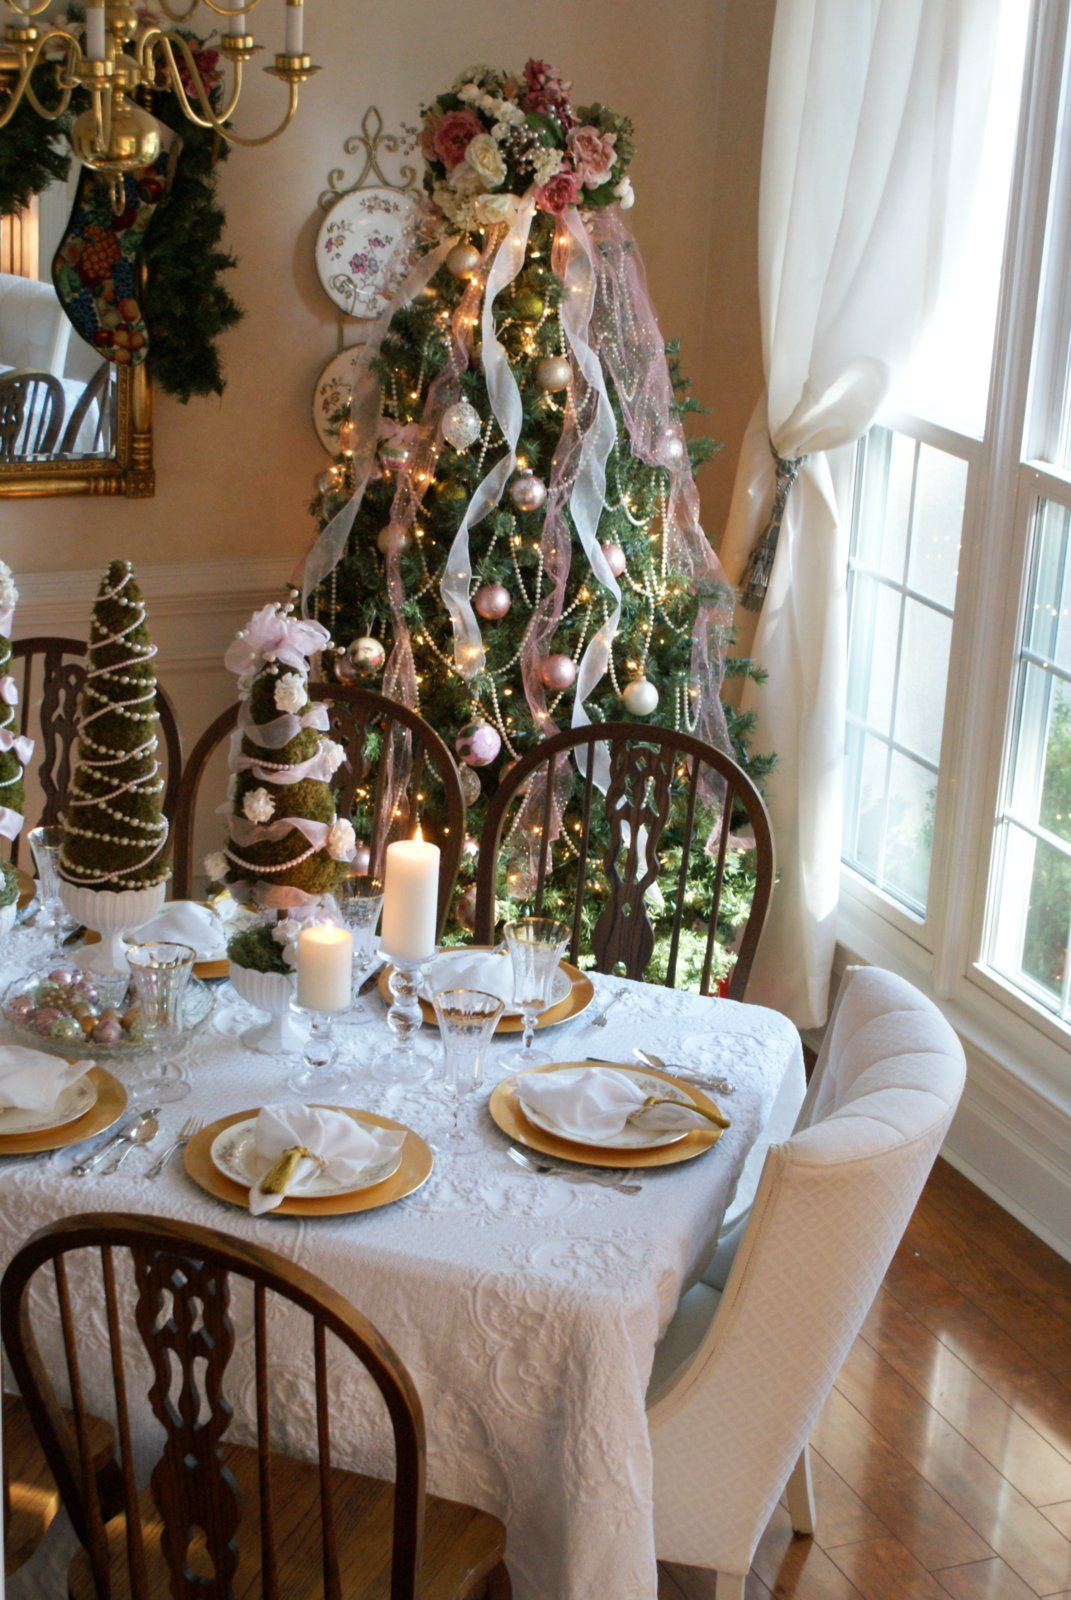 17 House Design Concepts That Will Certainly Make Your Area A Lot More Vivid That Makes Your Famil Christmas Place Settings Christmas Dining Room House Design